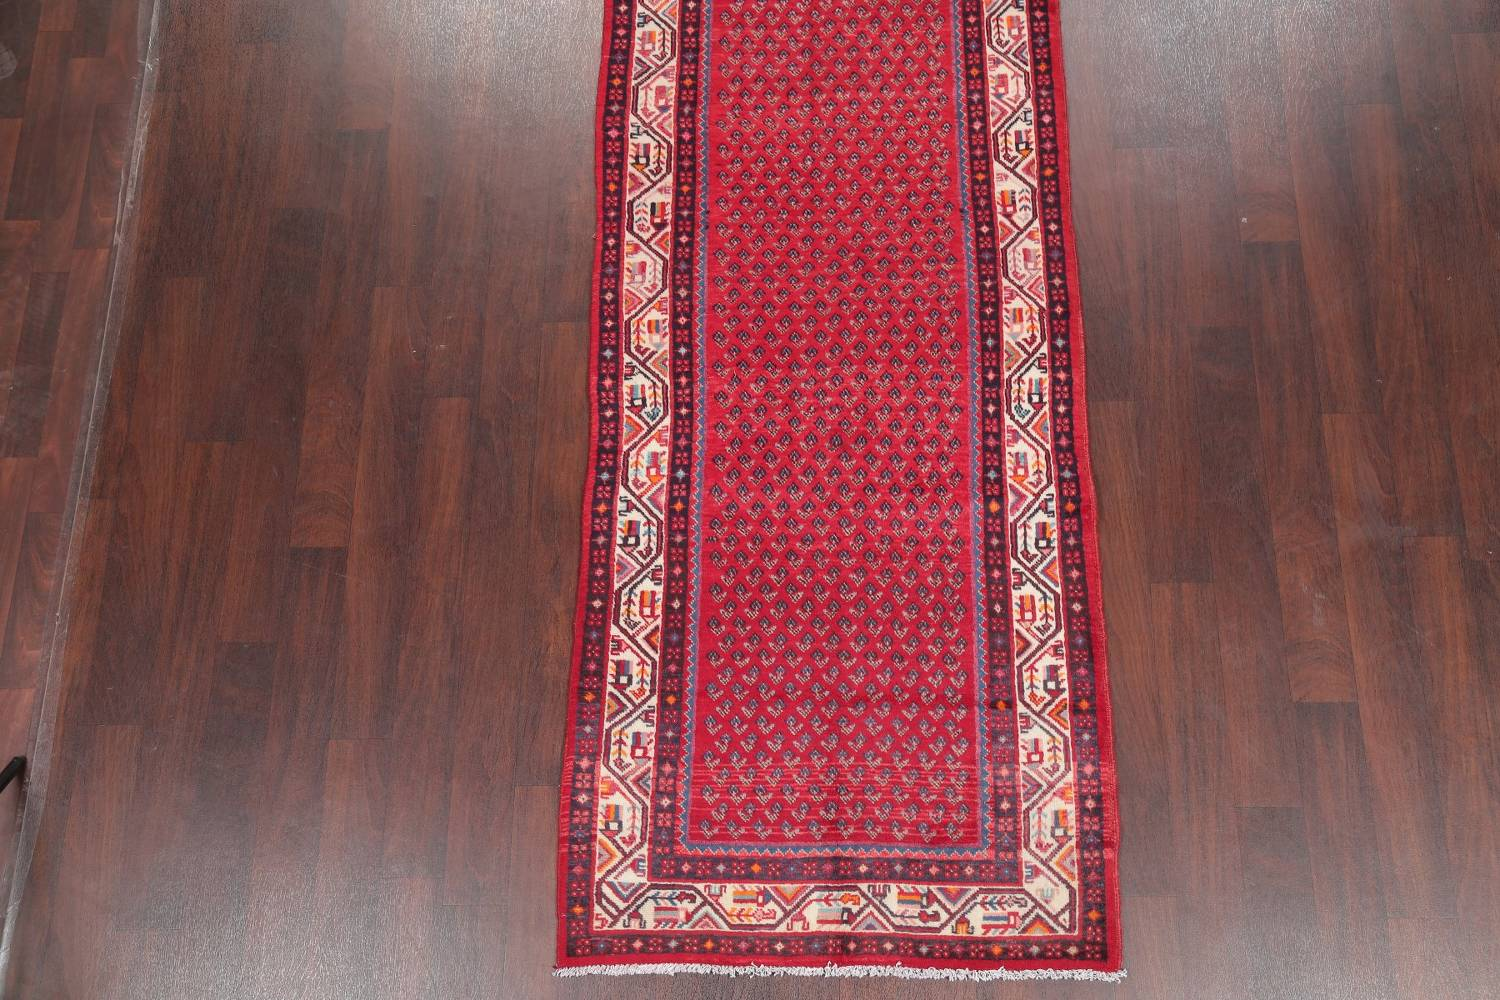 One-of-a-Kind Boteh Botemir Persian Runner Rug 3x13 image 5